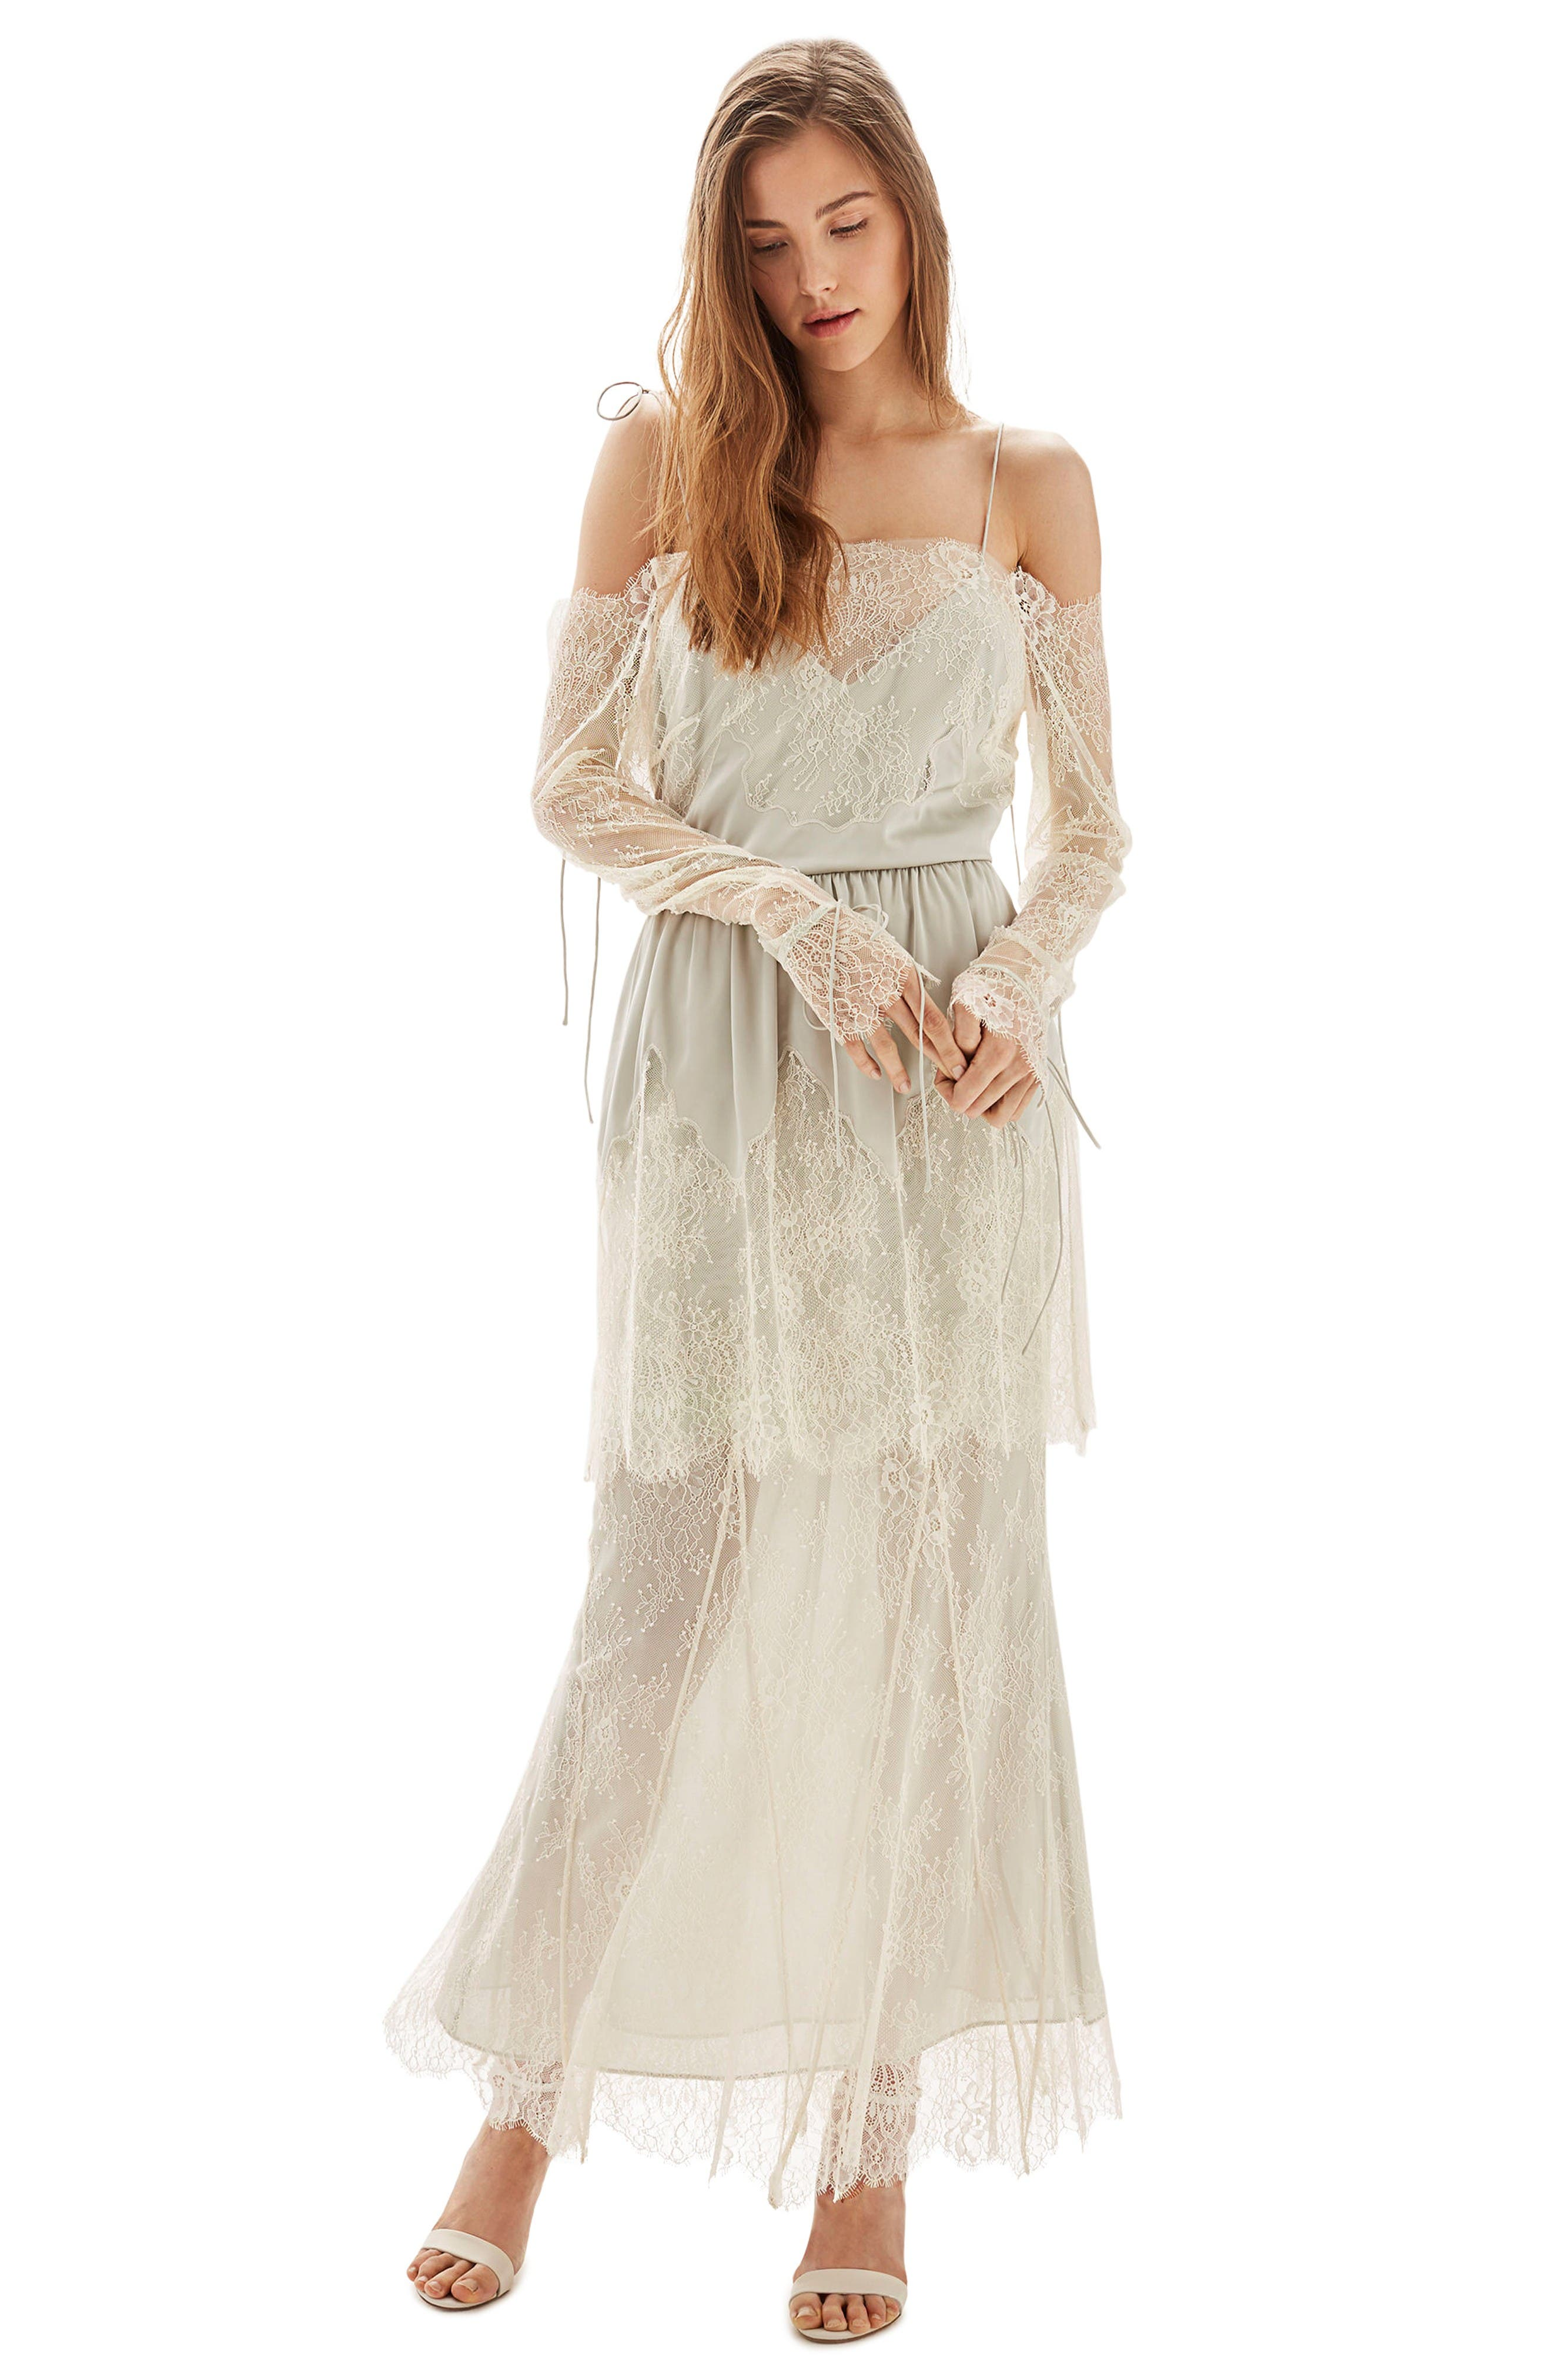 Topshop Bride Bardot Lace Off the Shoulder Gown